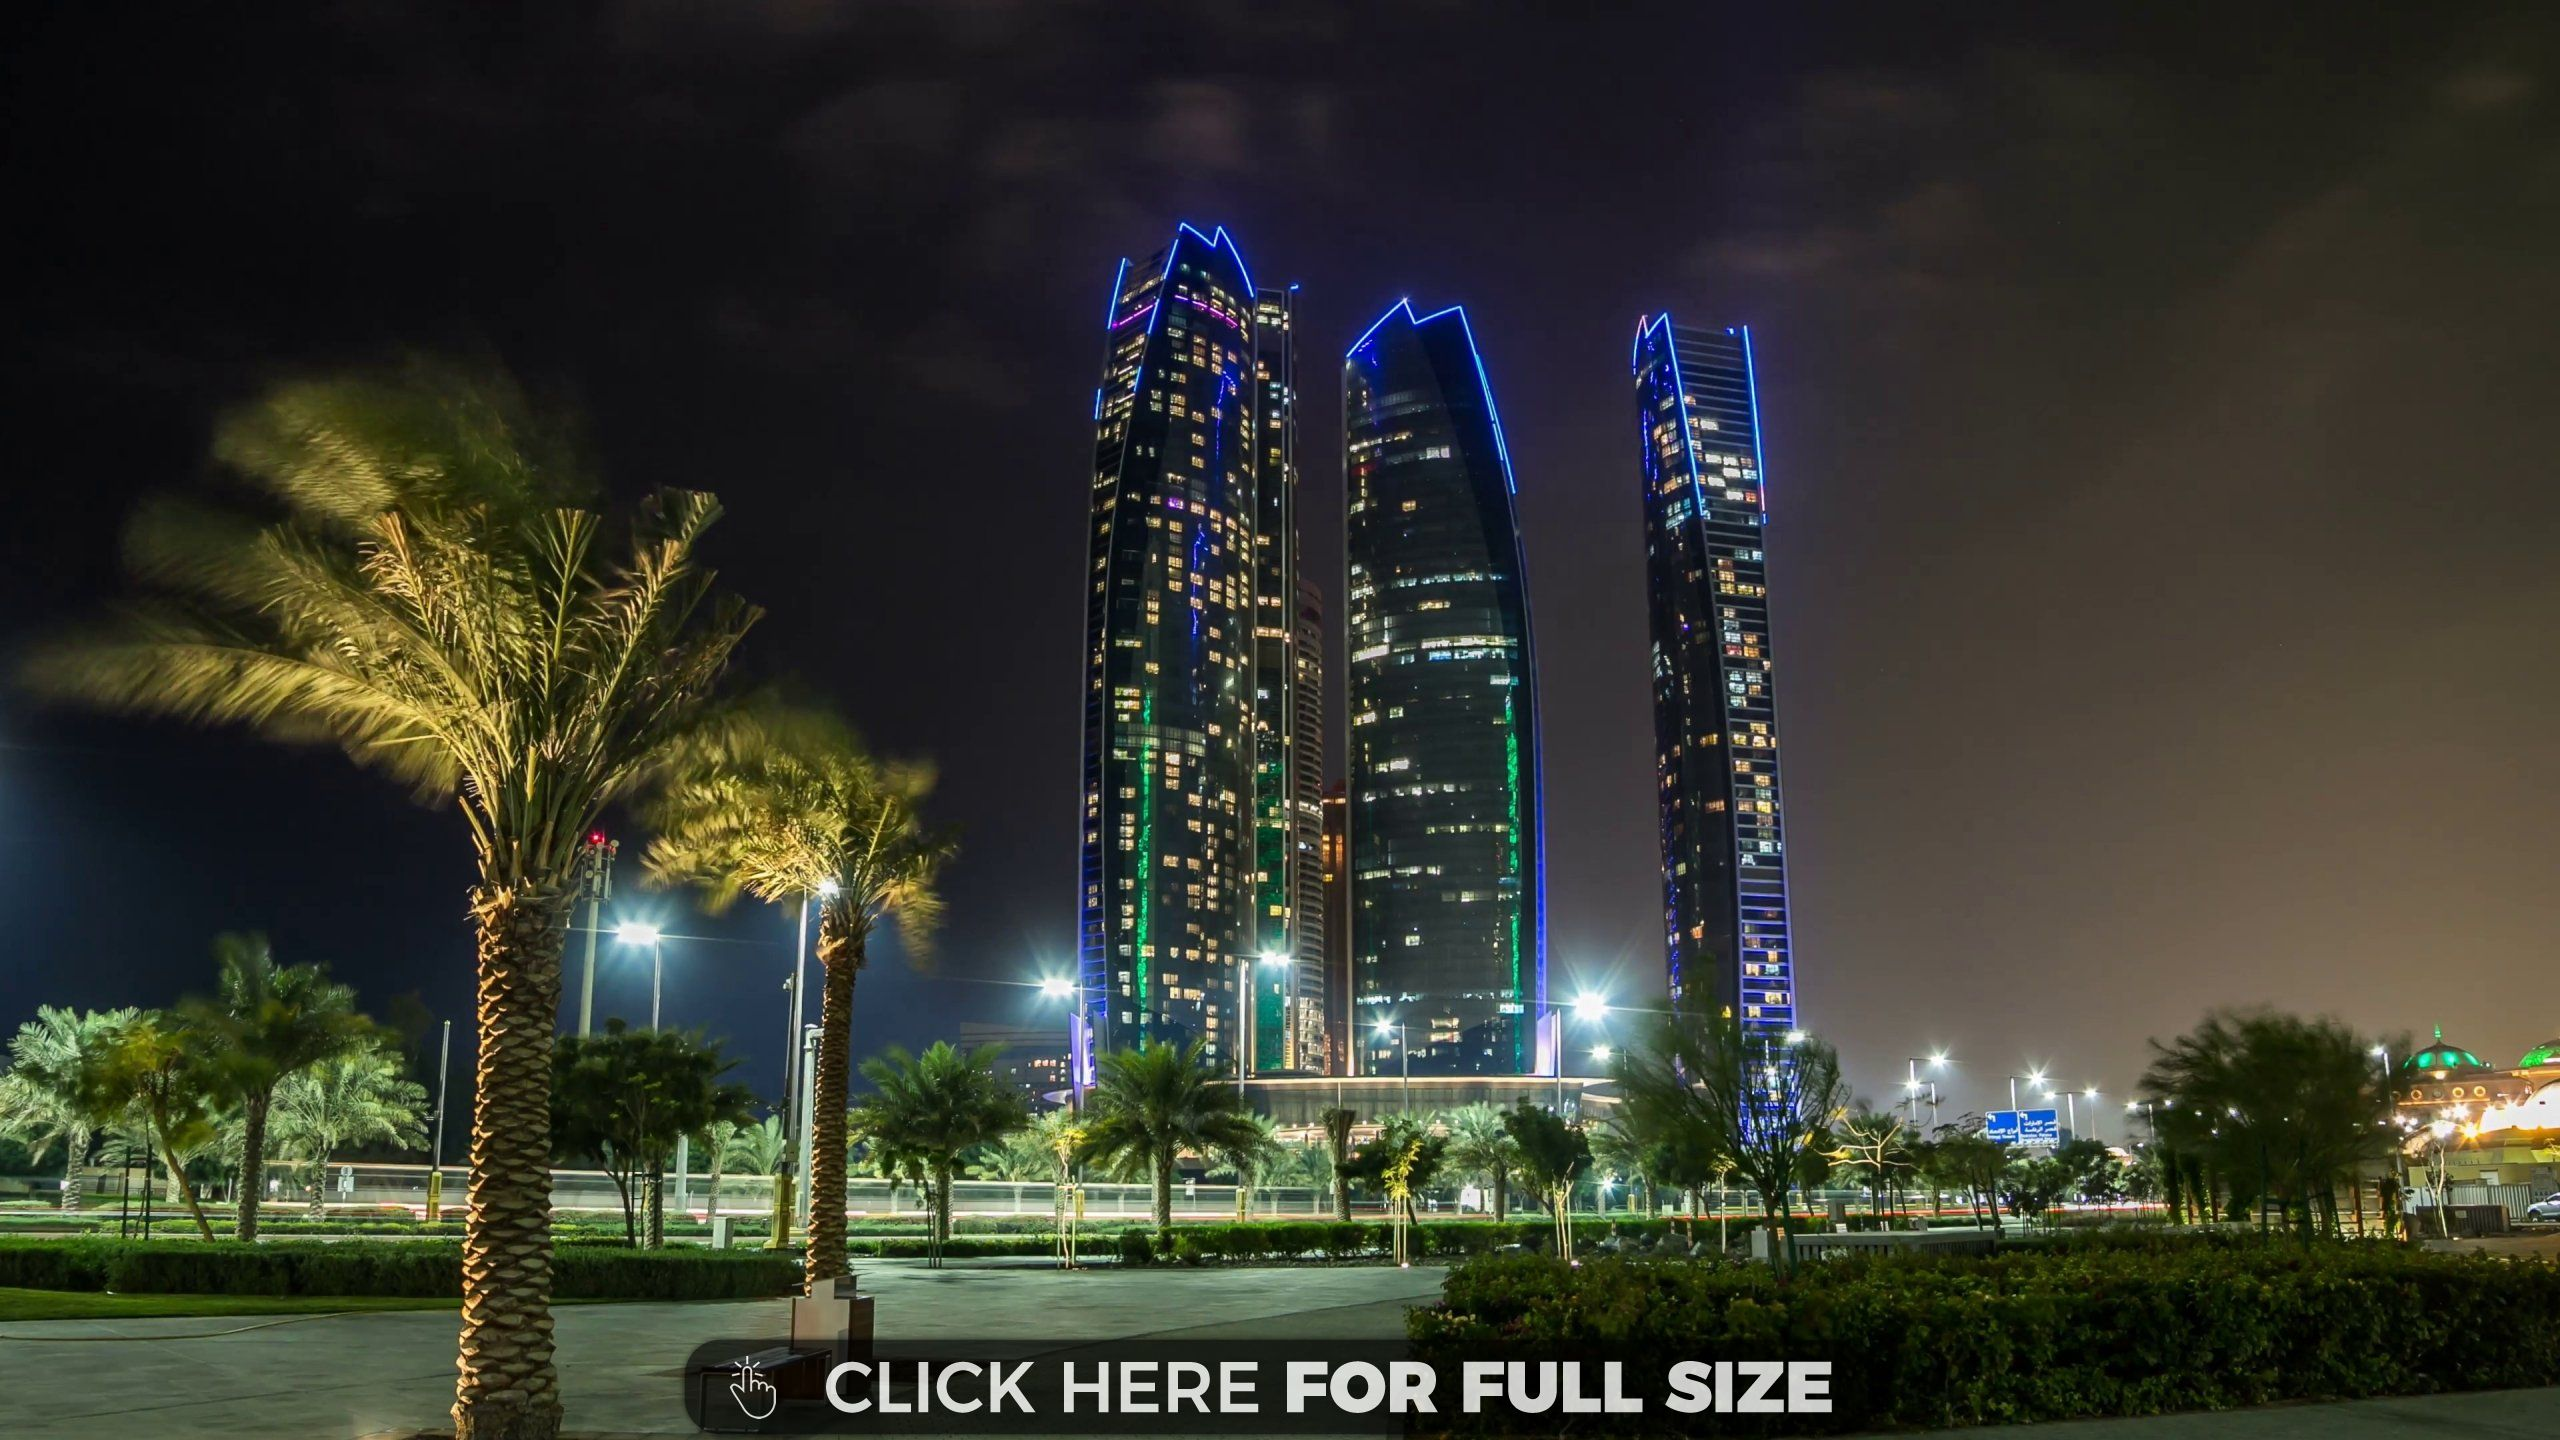 Etihad Towers Abu Dhabi Hd Wallpaper Abu Dhabi Abu Tower